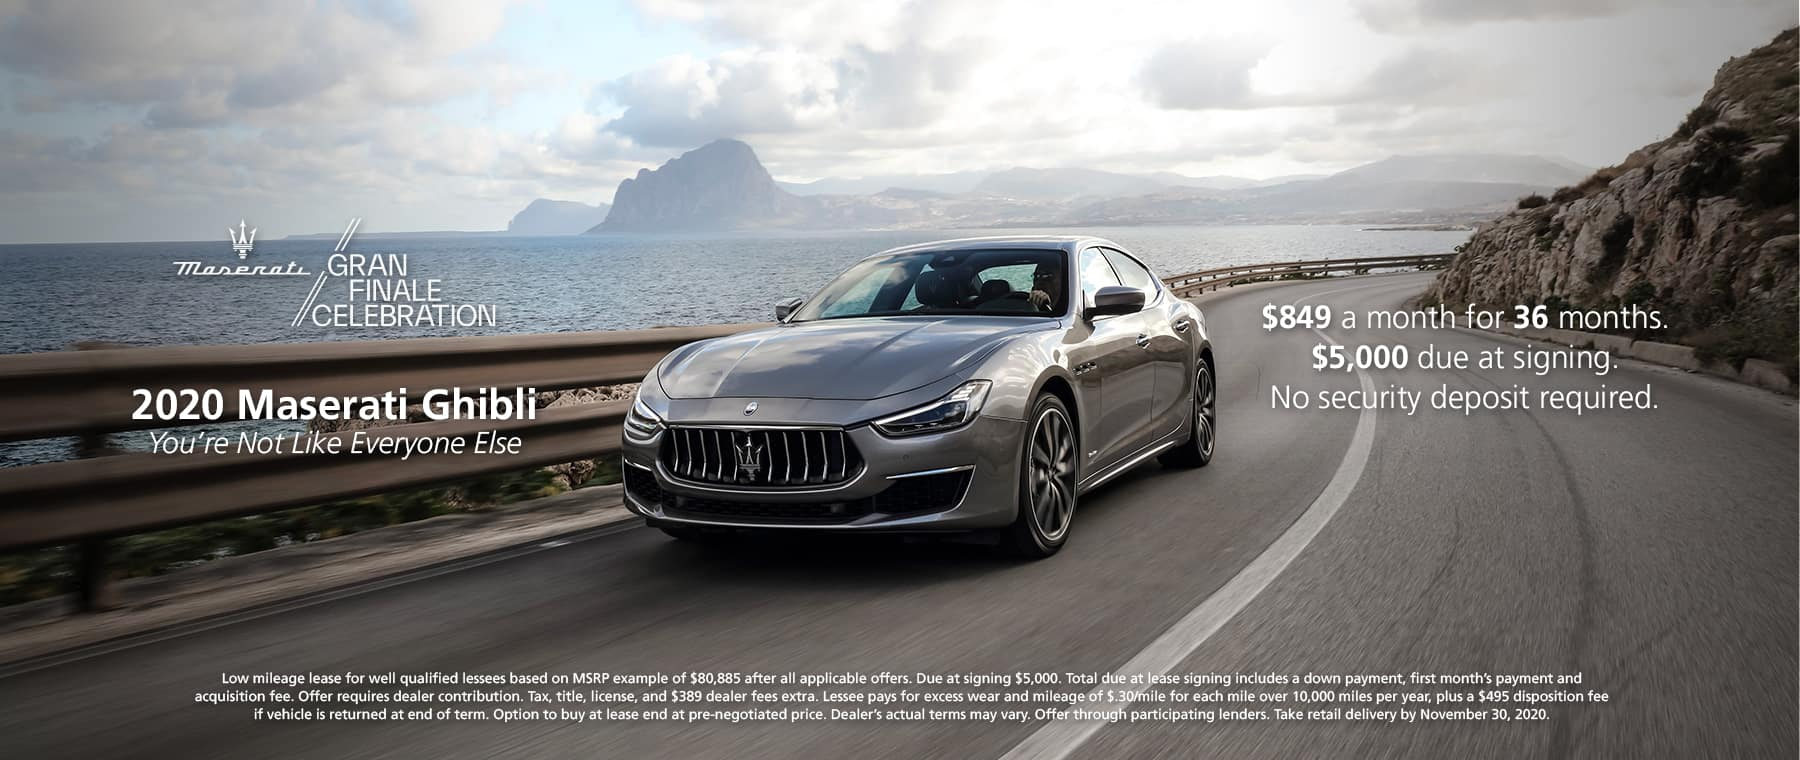 2020 Maserati Ghibli $849 a month for 36 months. $5,000 due at signing. No security deposit required.